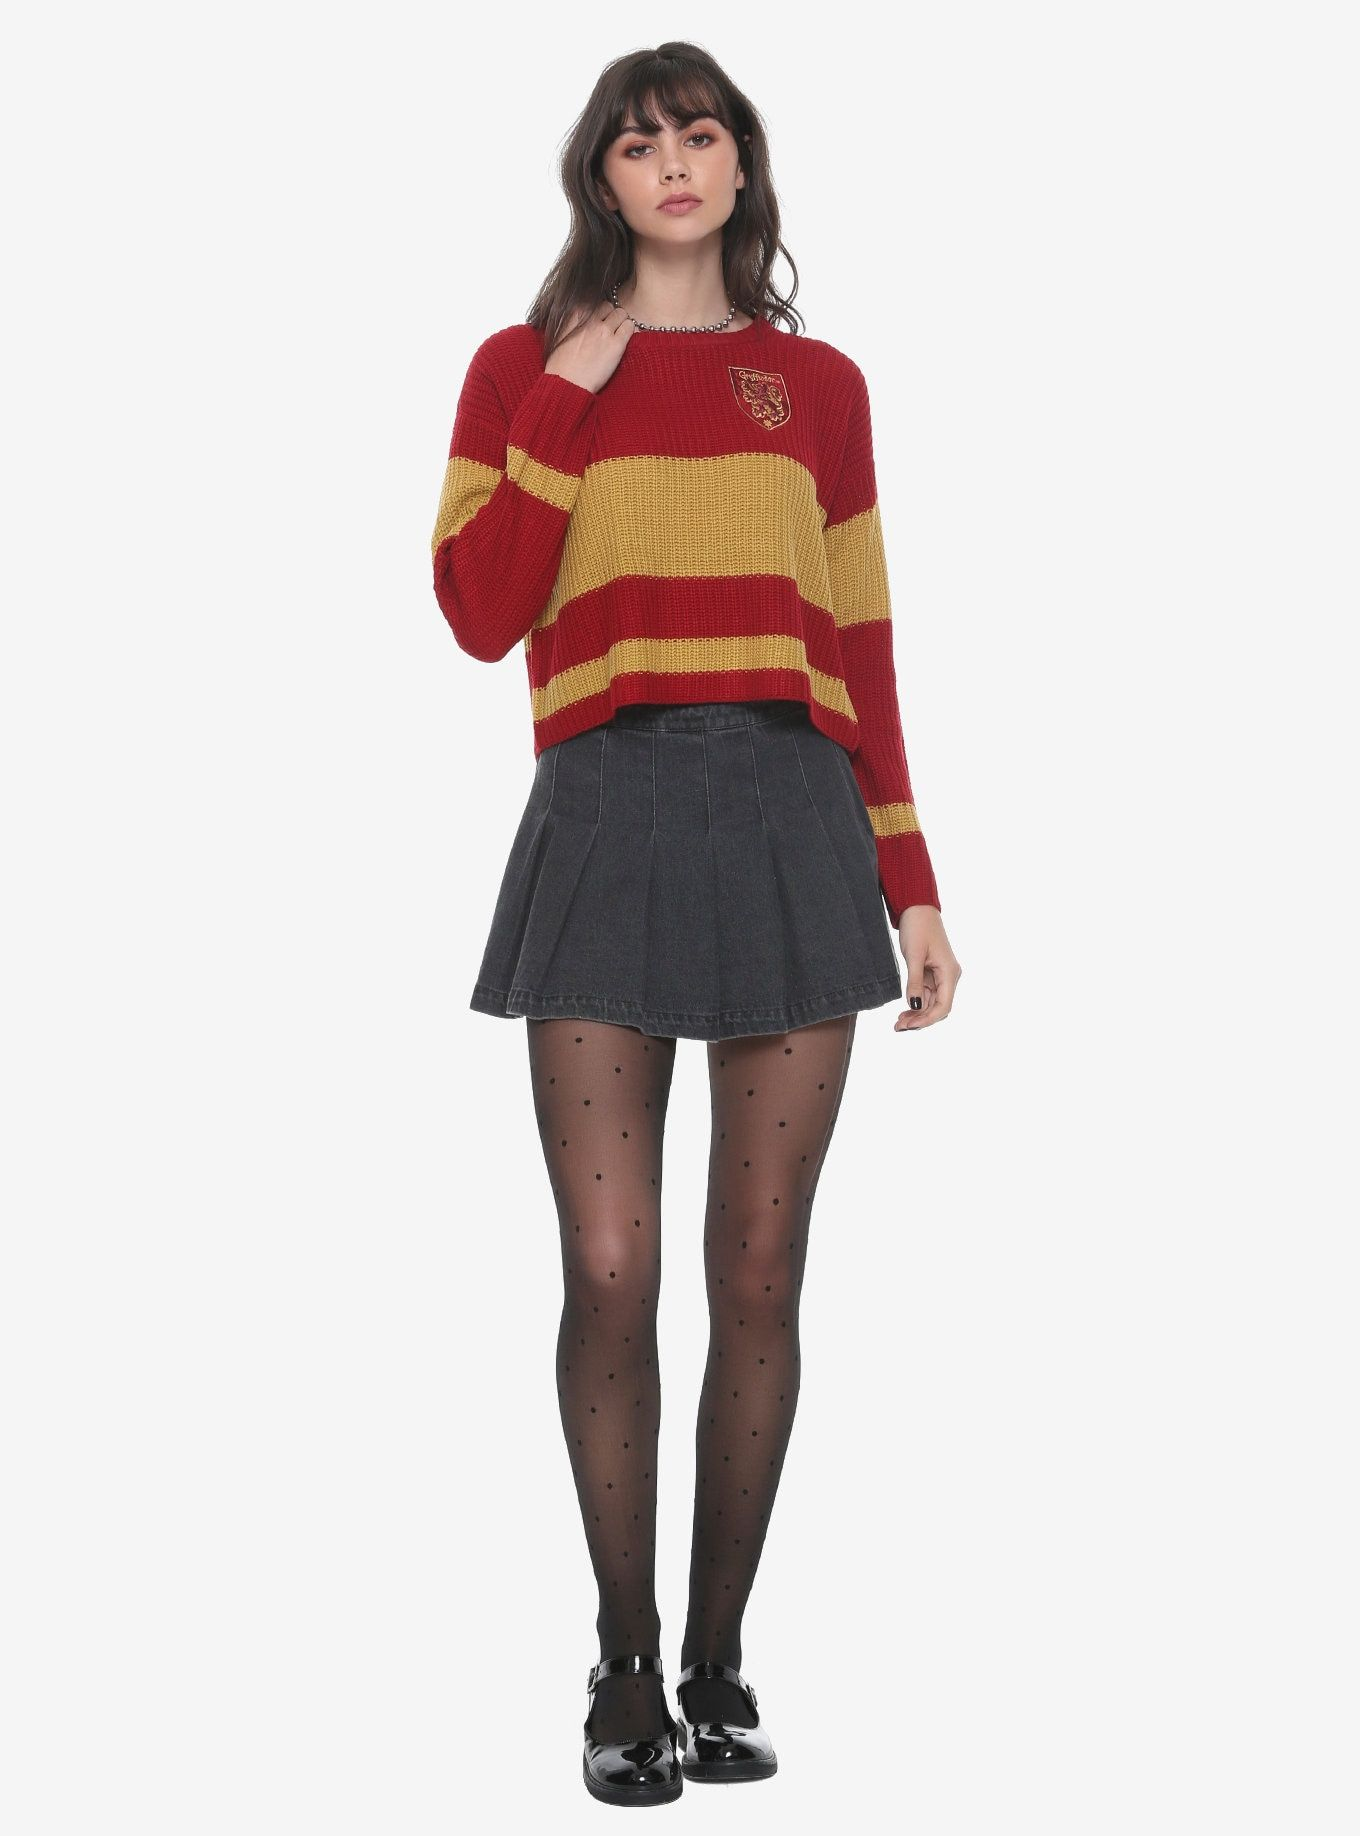 b6071ee8dd9 Harry Potter Gryffindor Girls Quidditch Sweater in 2019 | Clothes ...